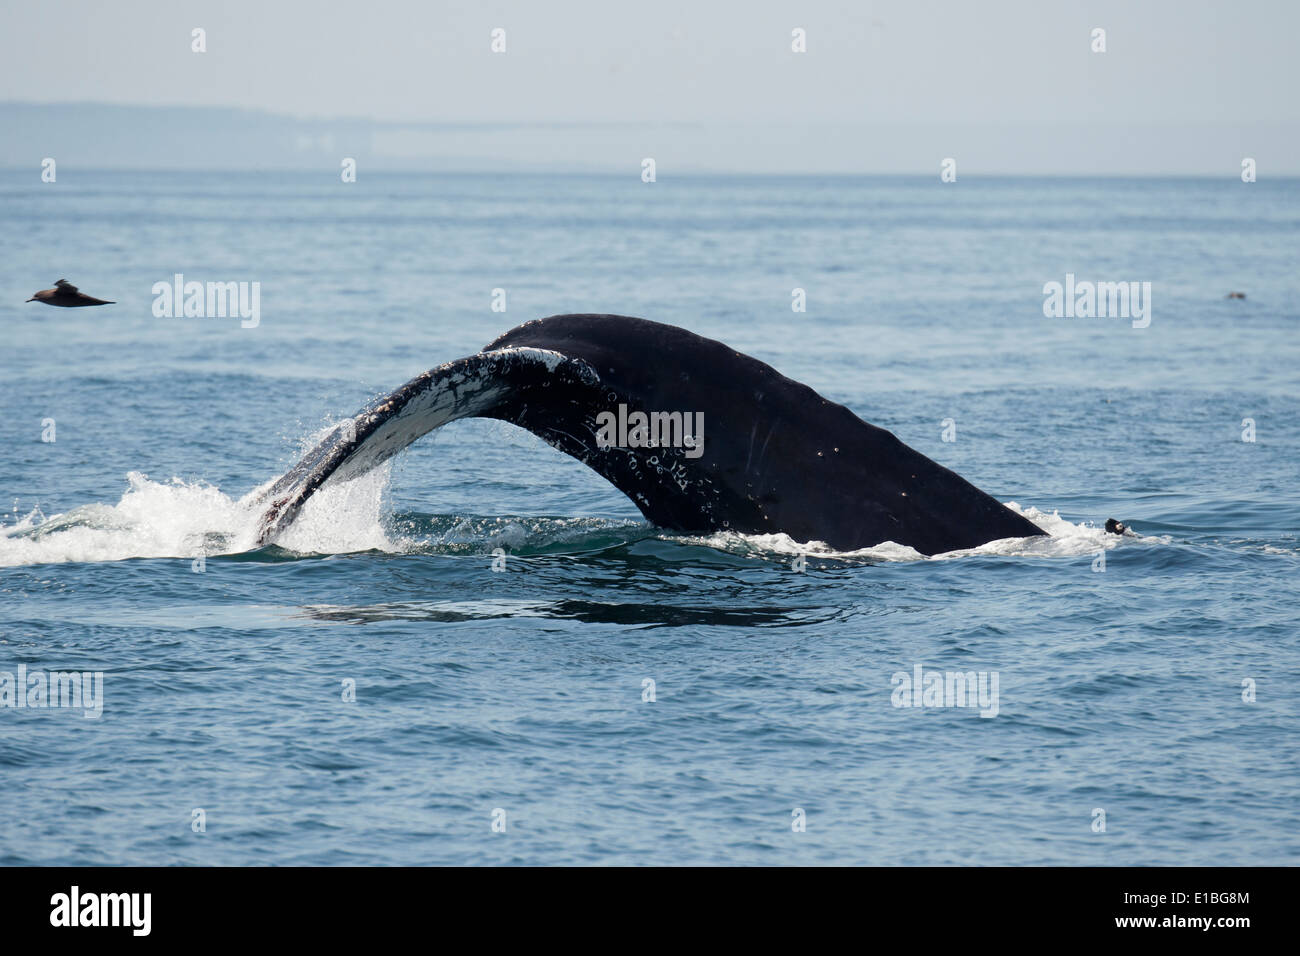 Humpback Whale (Megaptera novaeangliae) fluking, with mirage in background. Monterey, California, Pacific Ocean. - Stock Image